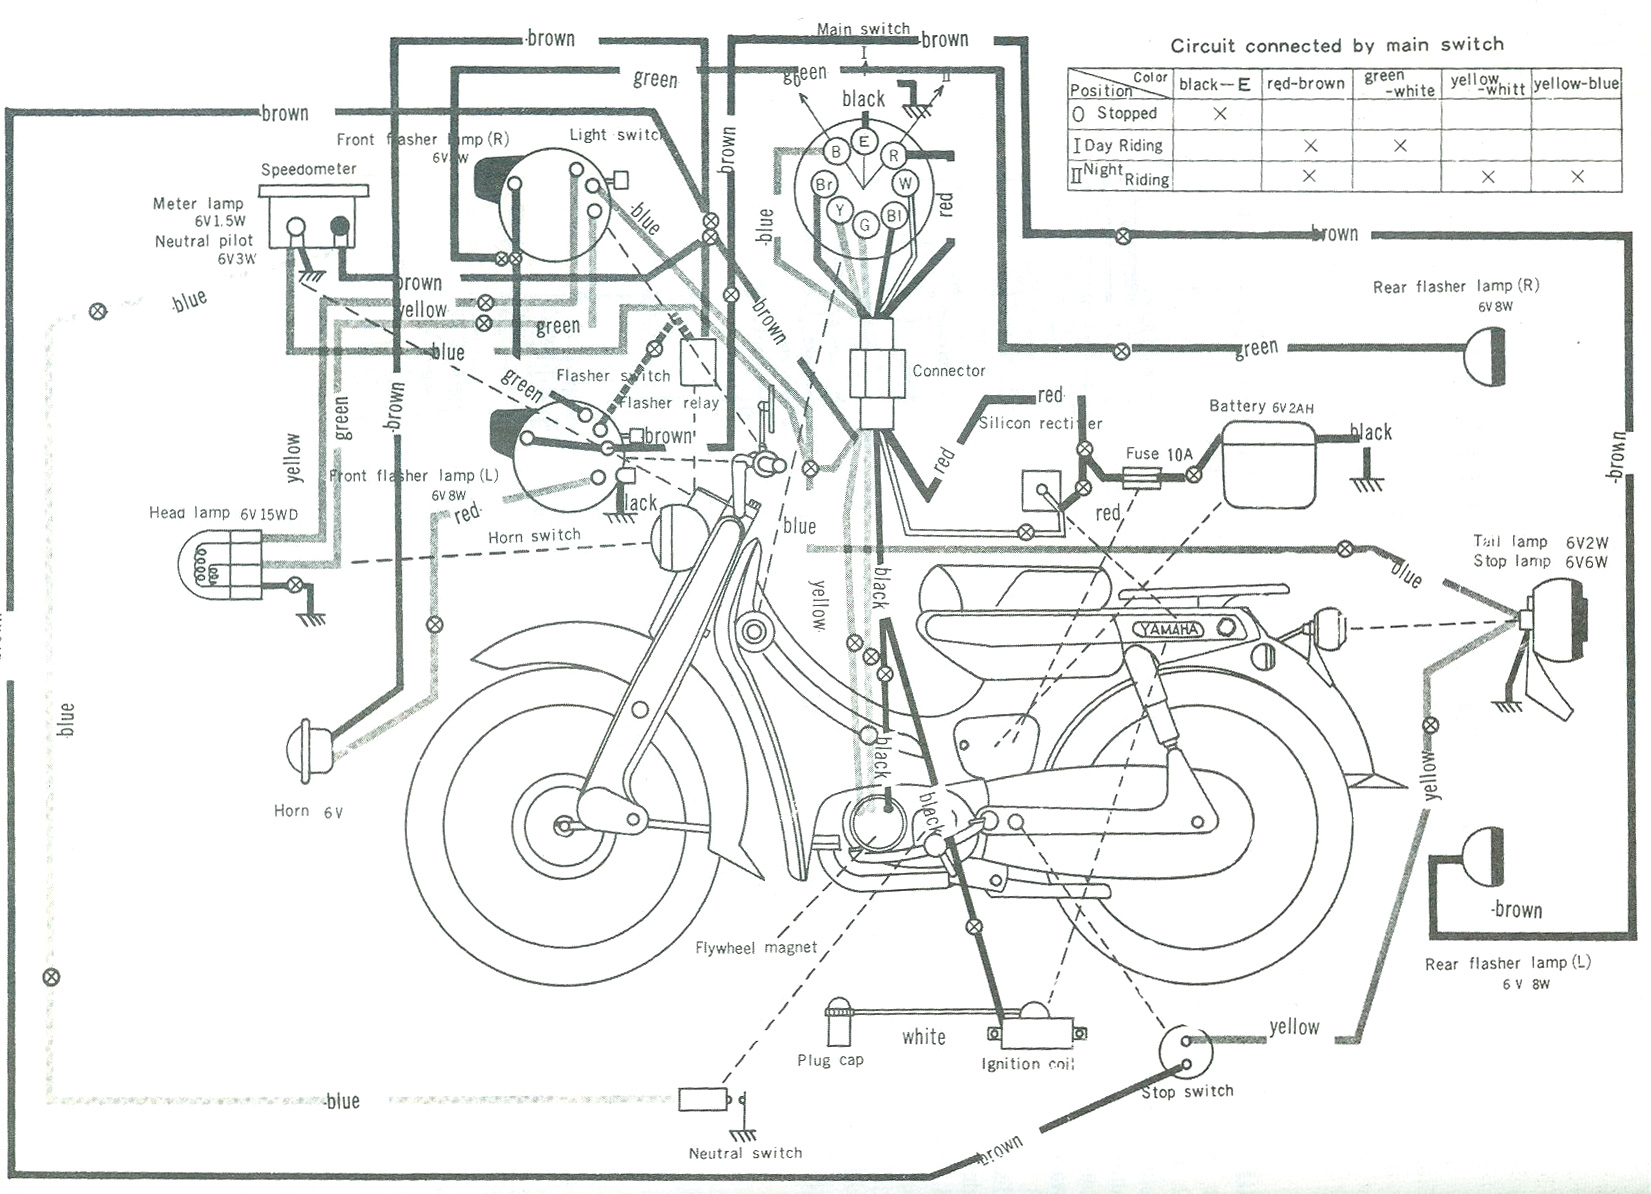 hight resolution of 78 yamaha dt 100 wiring diagram simple wiring diagram schema1980 yamaha dt 100 wiring wiring diagrams